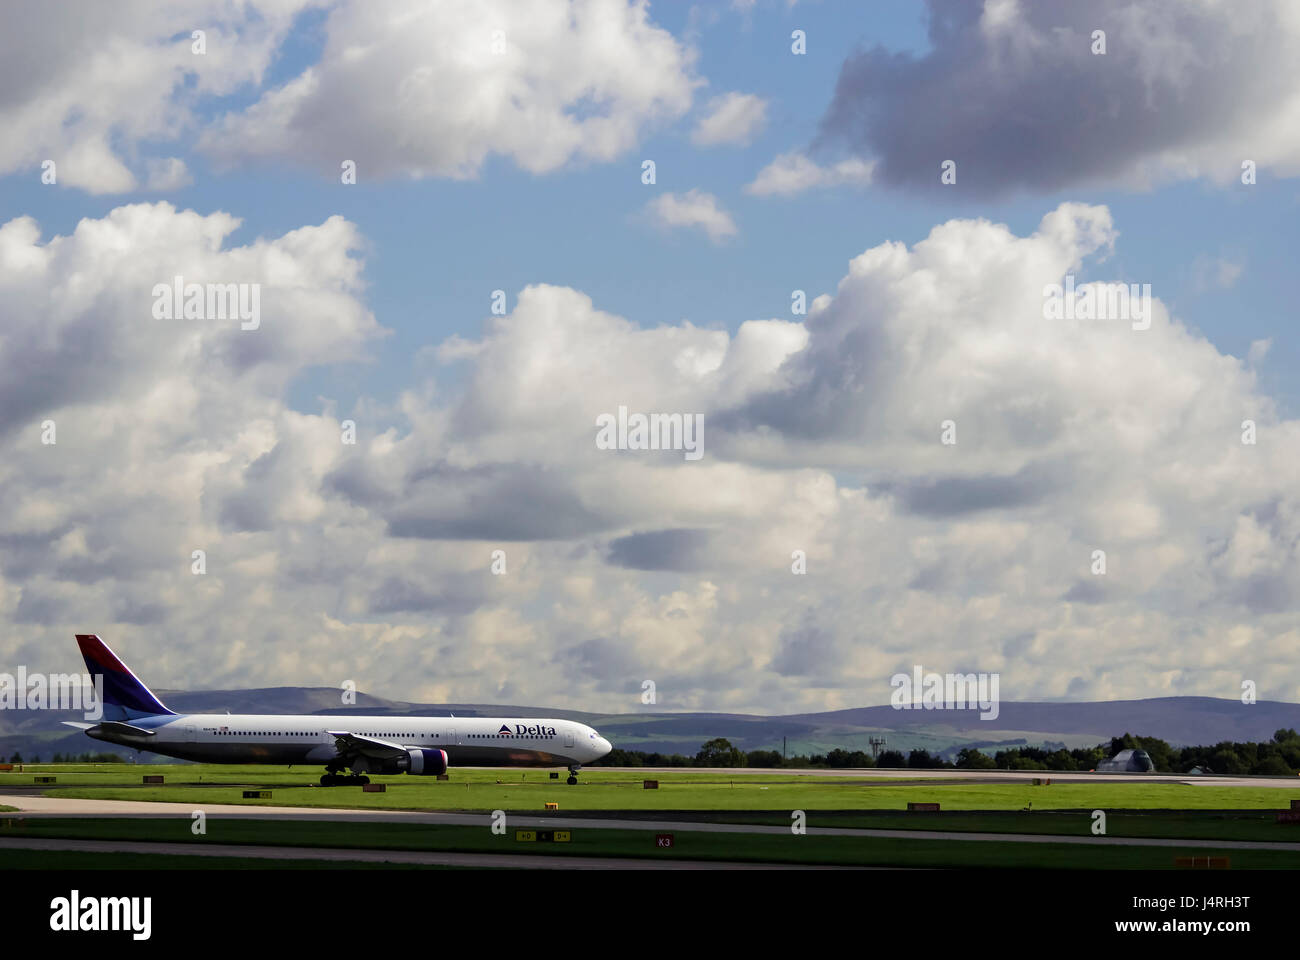 Delta Airlines plane at Manchester airport. Boeing 757-232 - Stock Image